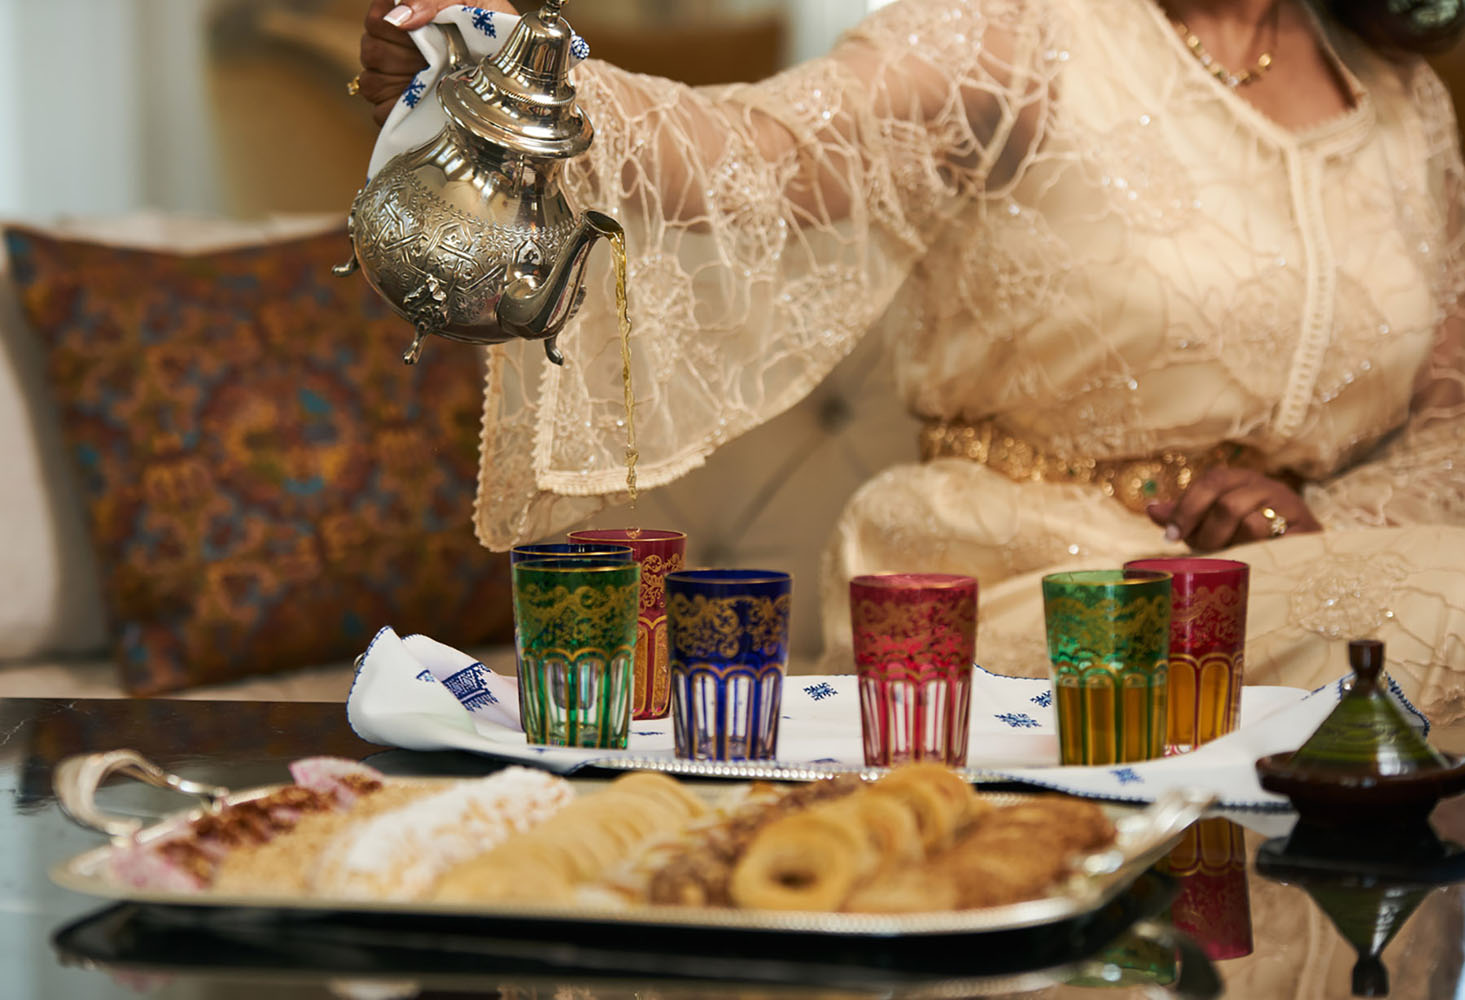 A woman Pours Moroccan Tea from Traditional moroccan Teapot into cups